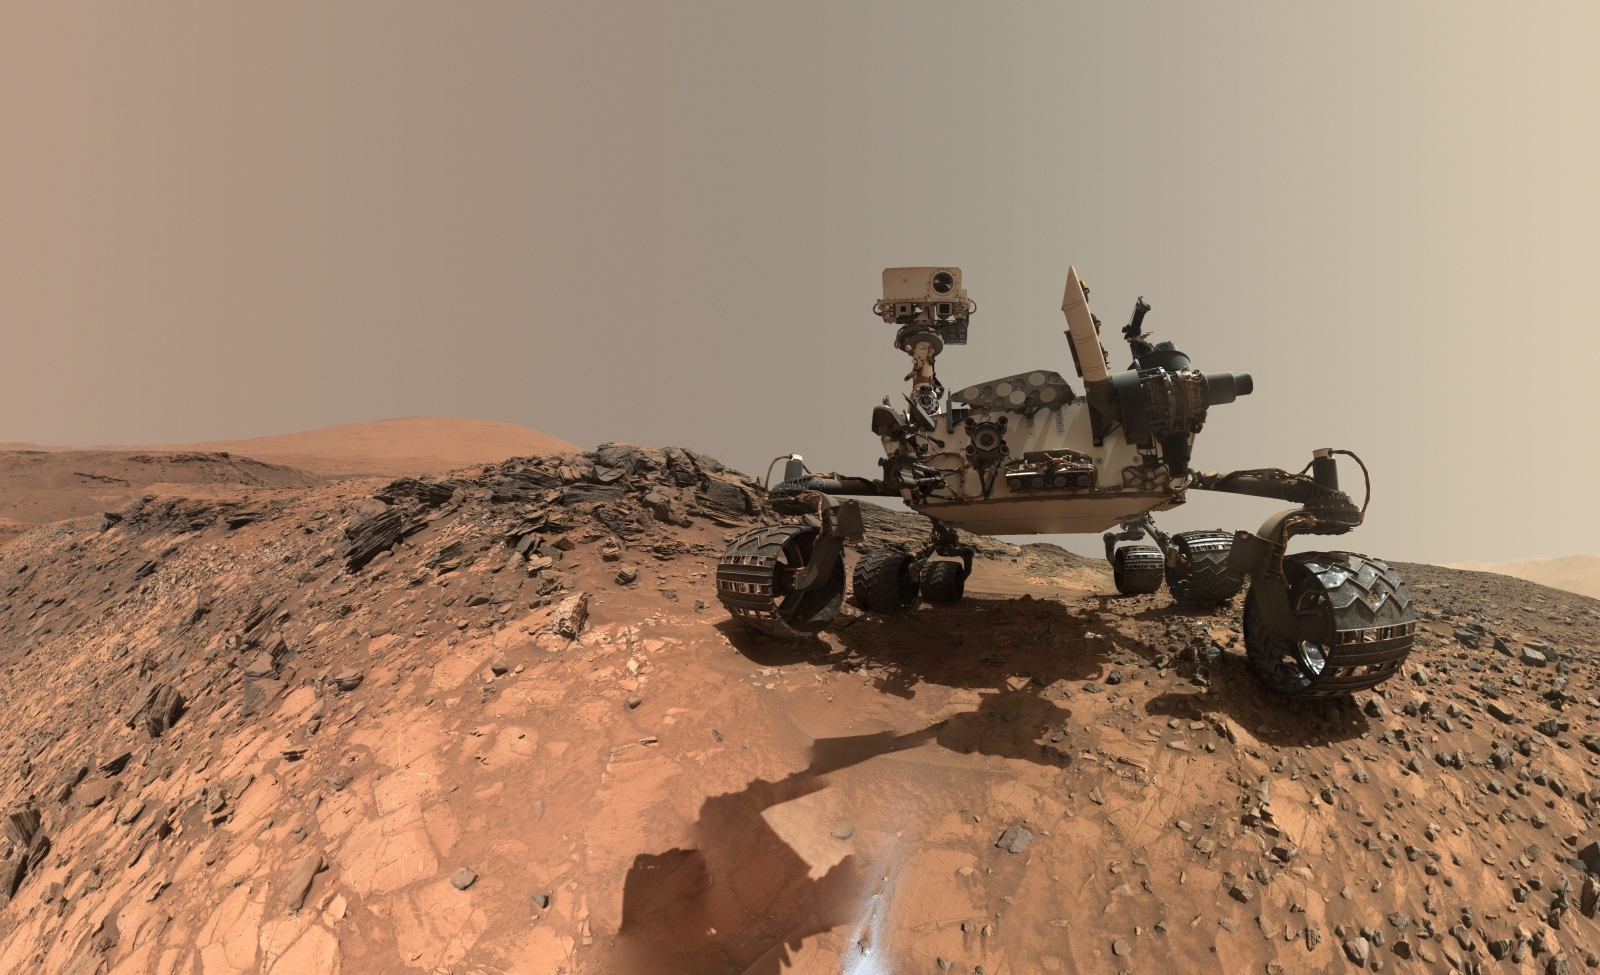 nasa rover selfie - photo #14